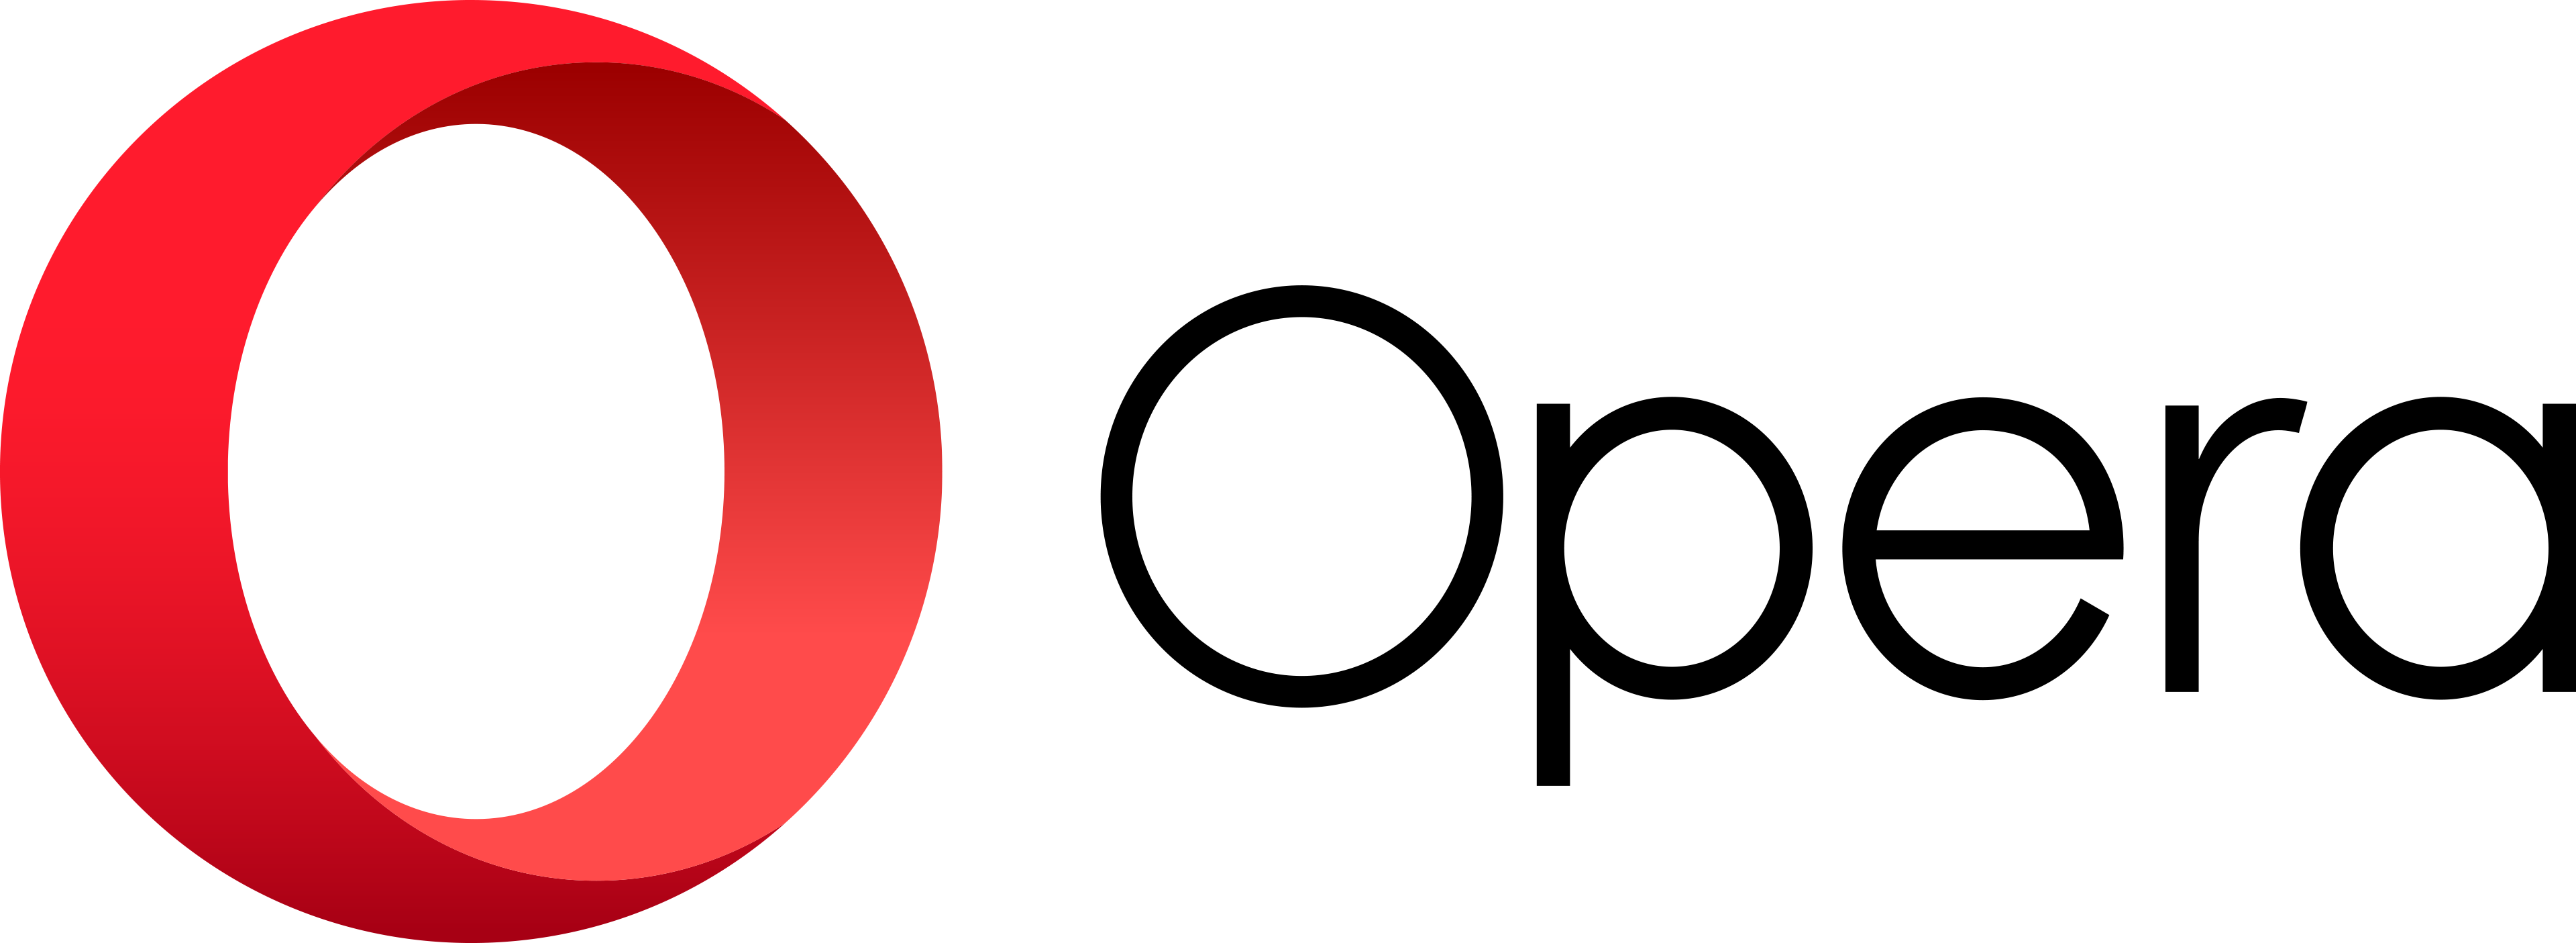 File:Opera Software logo.png